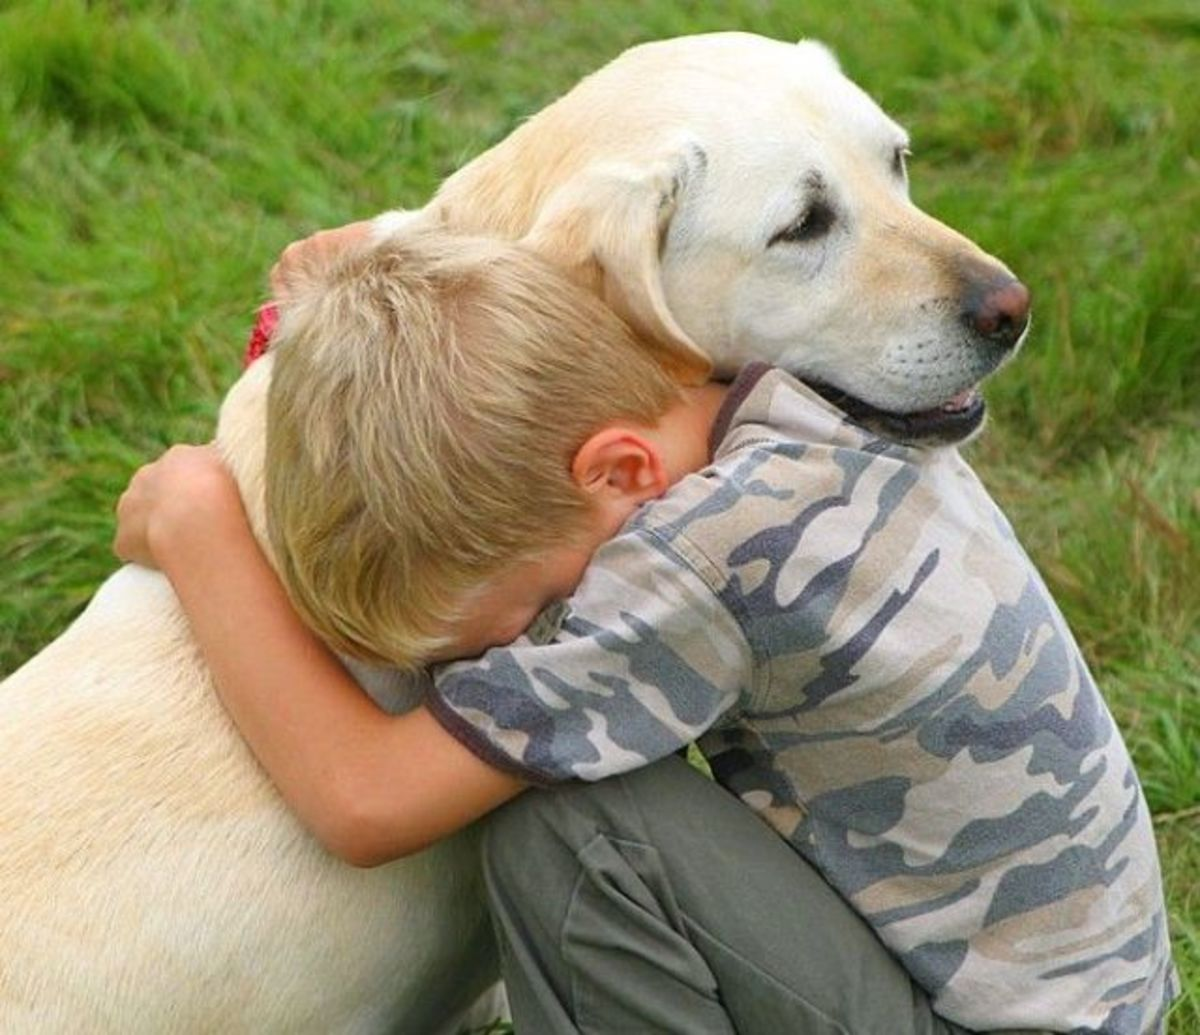 how-child-animal-relationship-can-help-develop-empathy-in-children